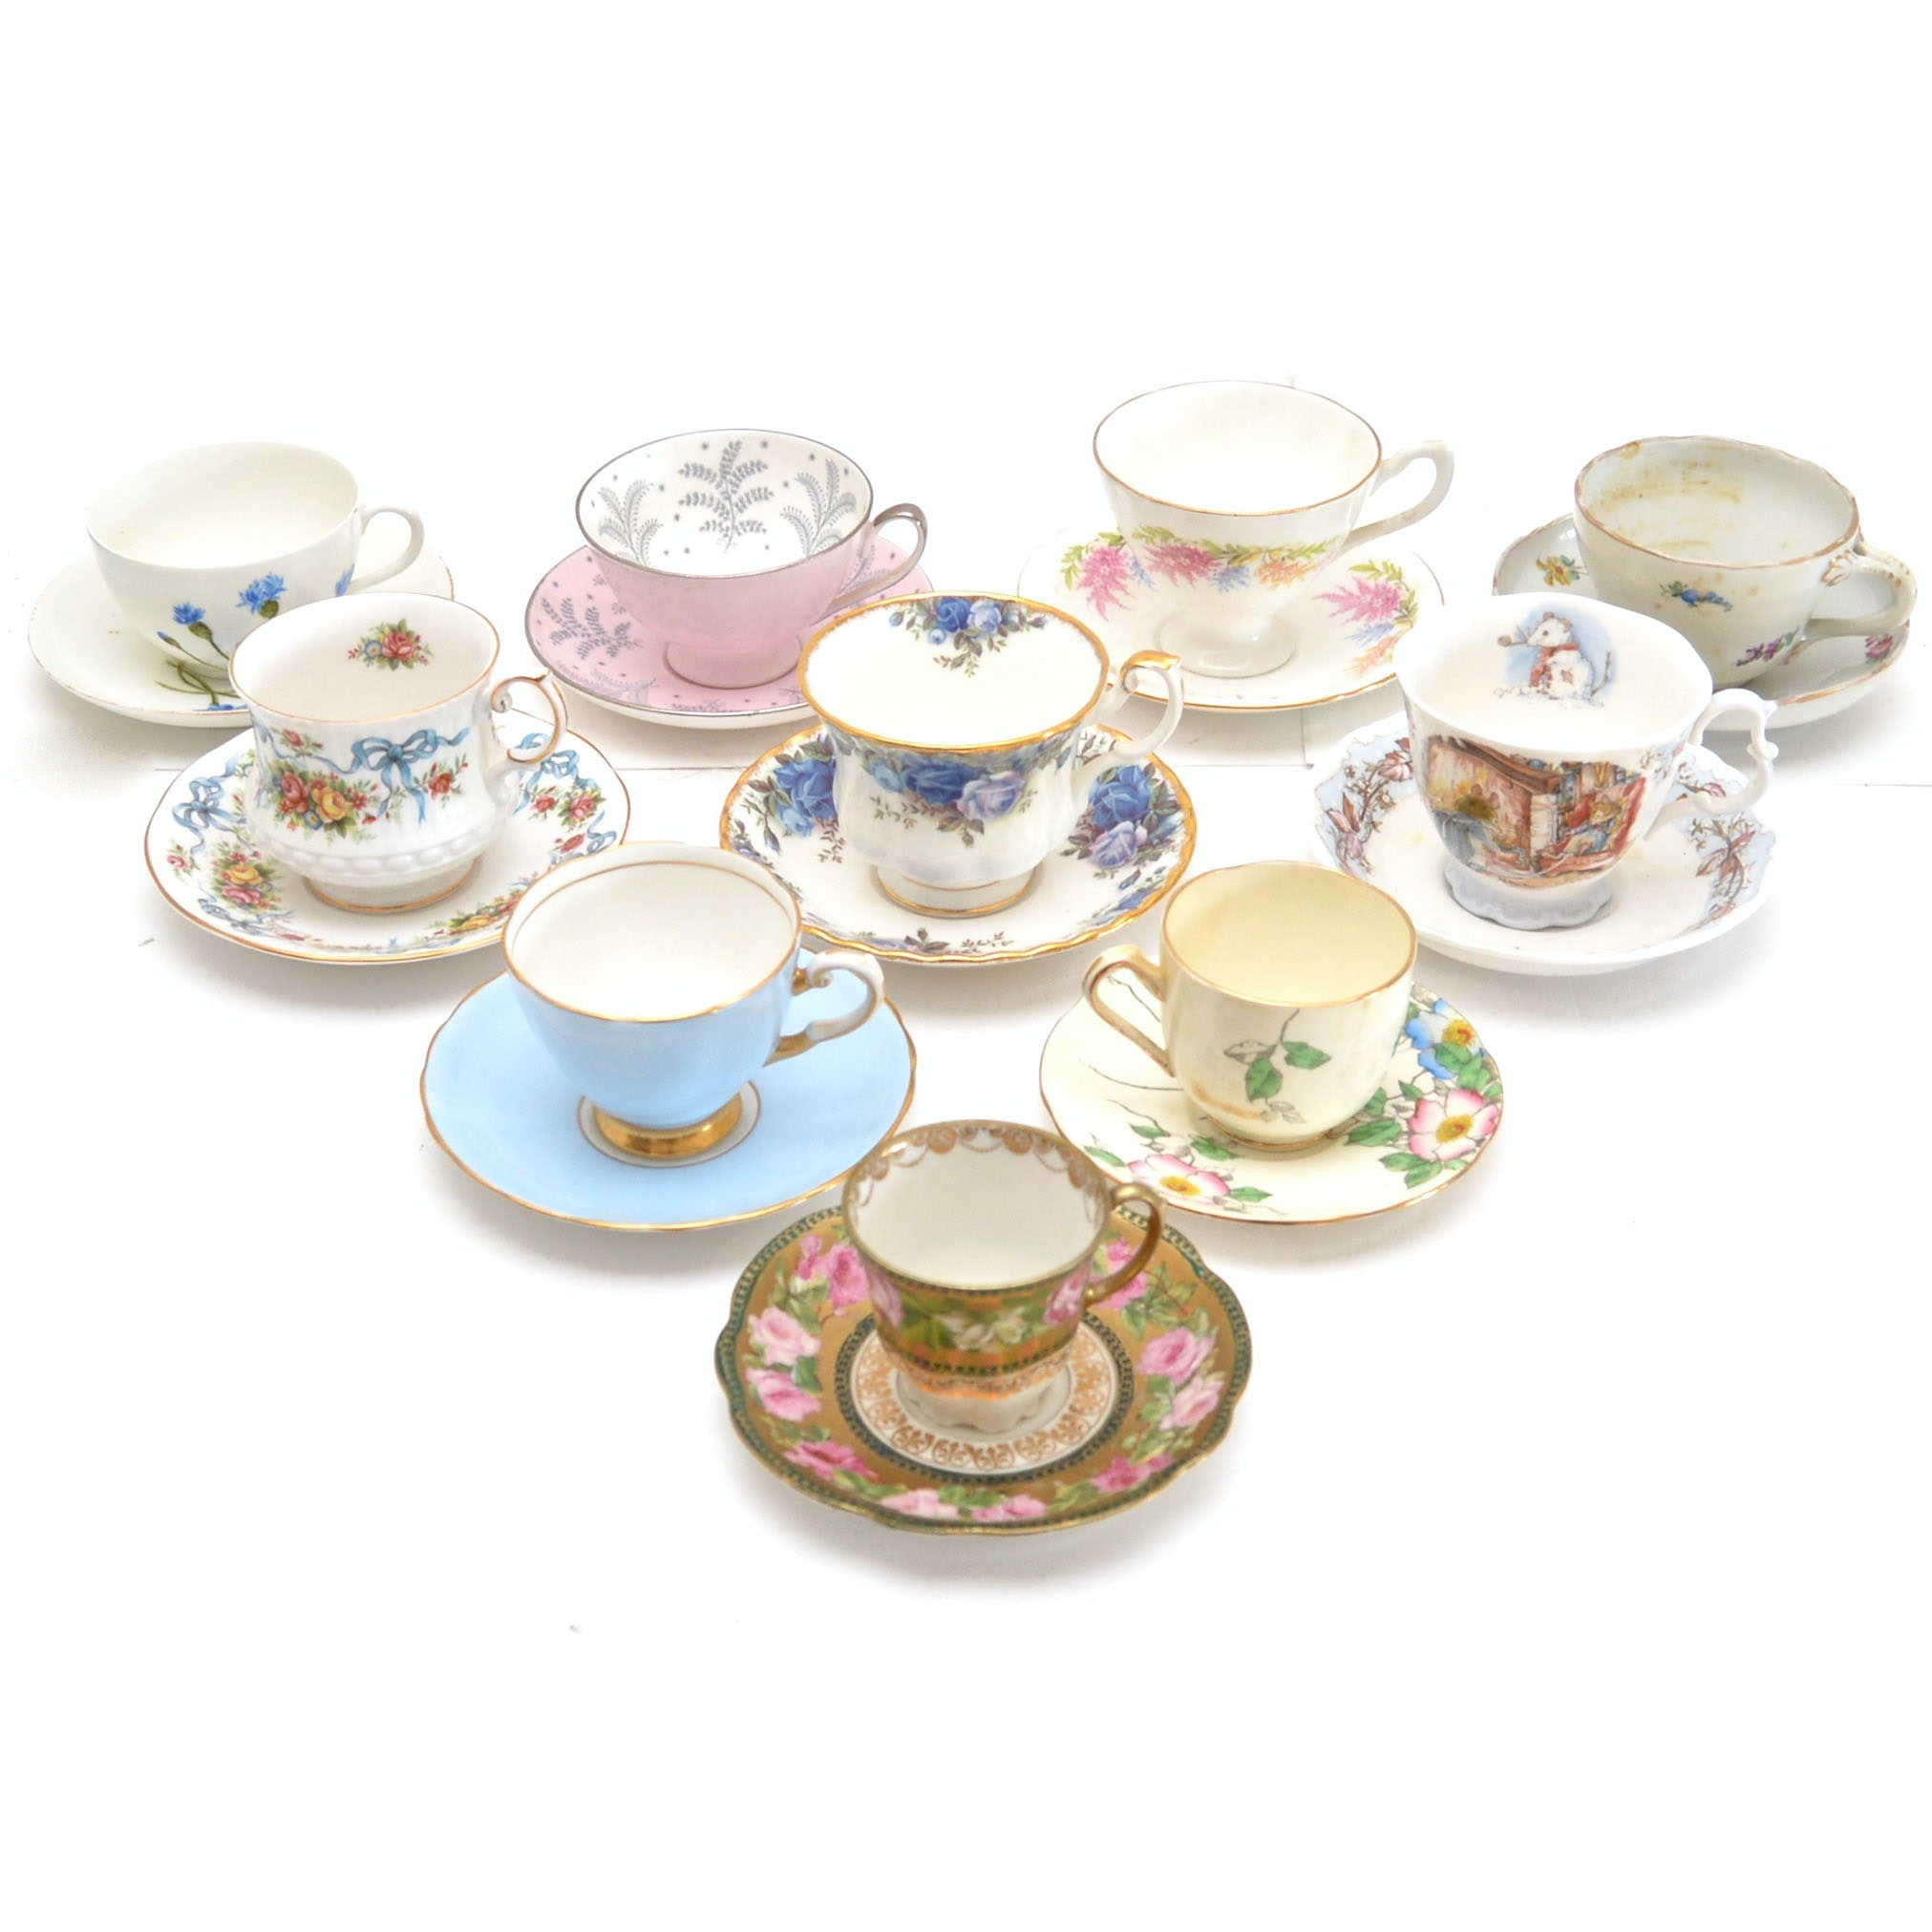 Vintage Teacup and Saucer Collection